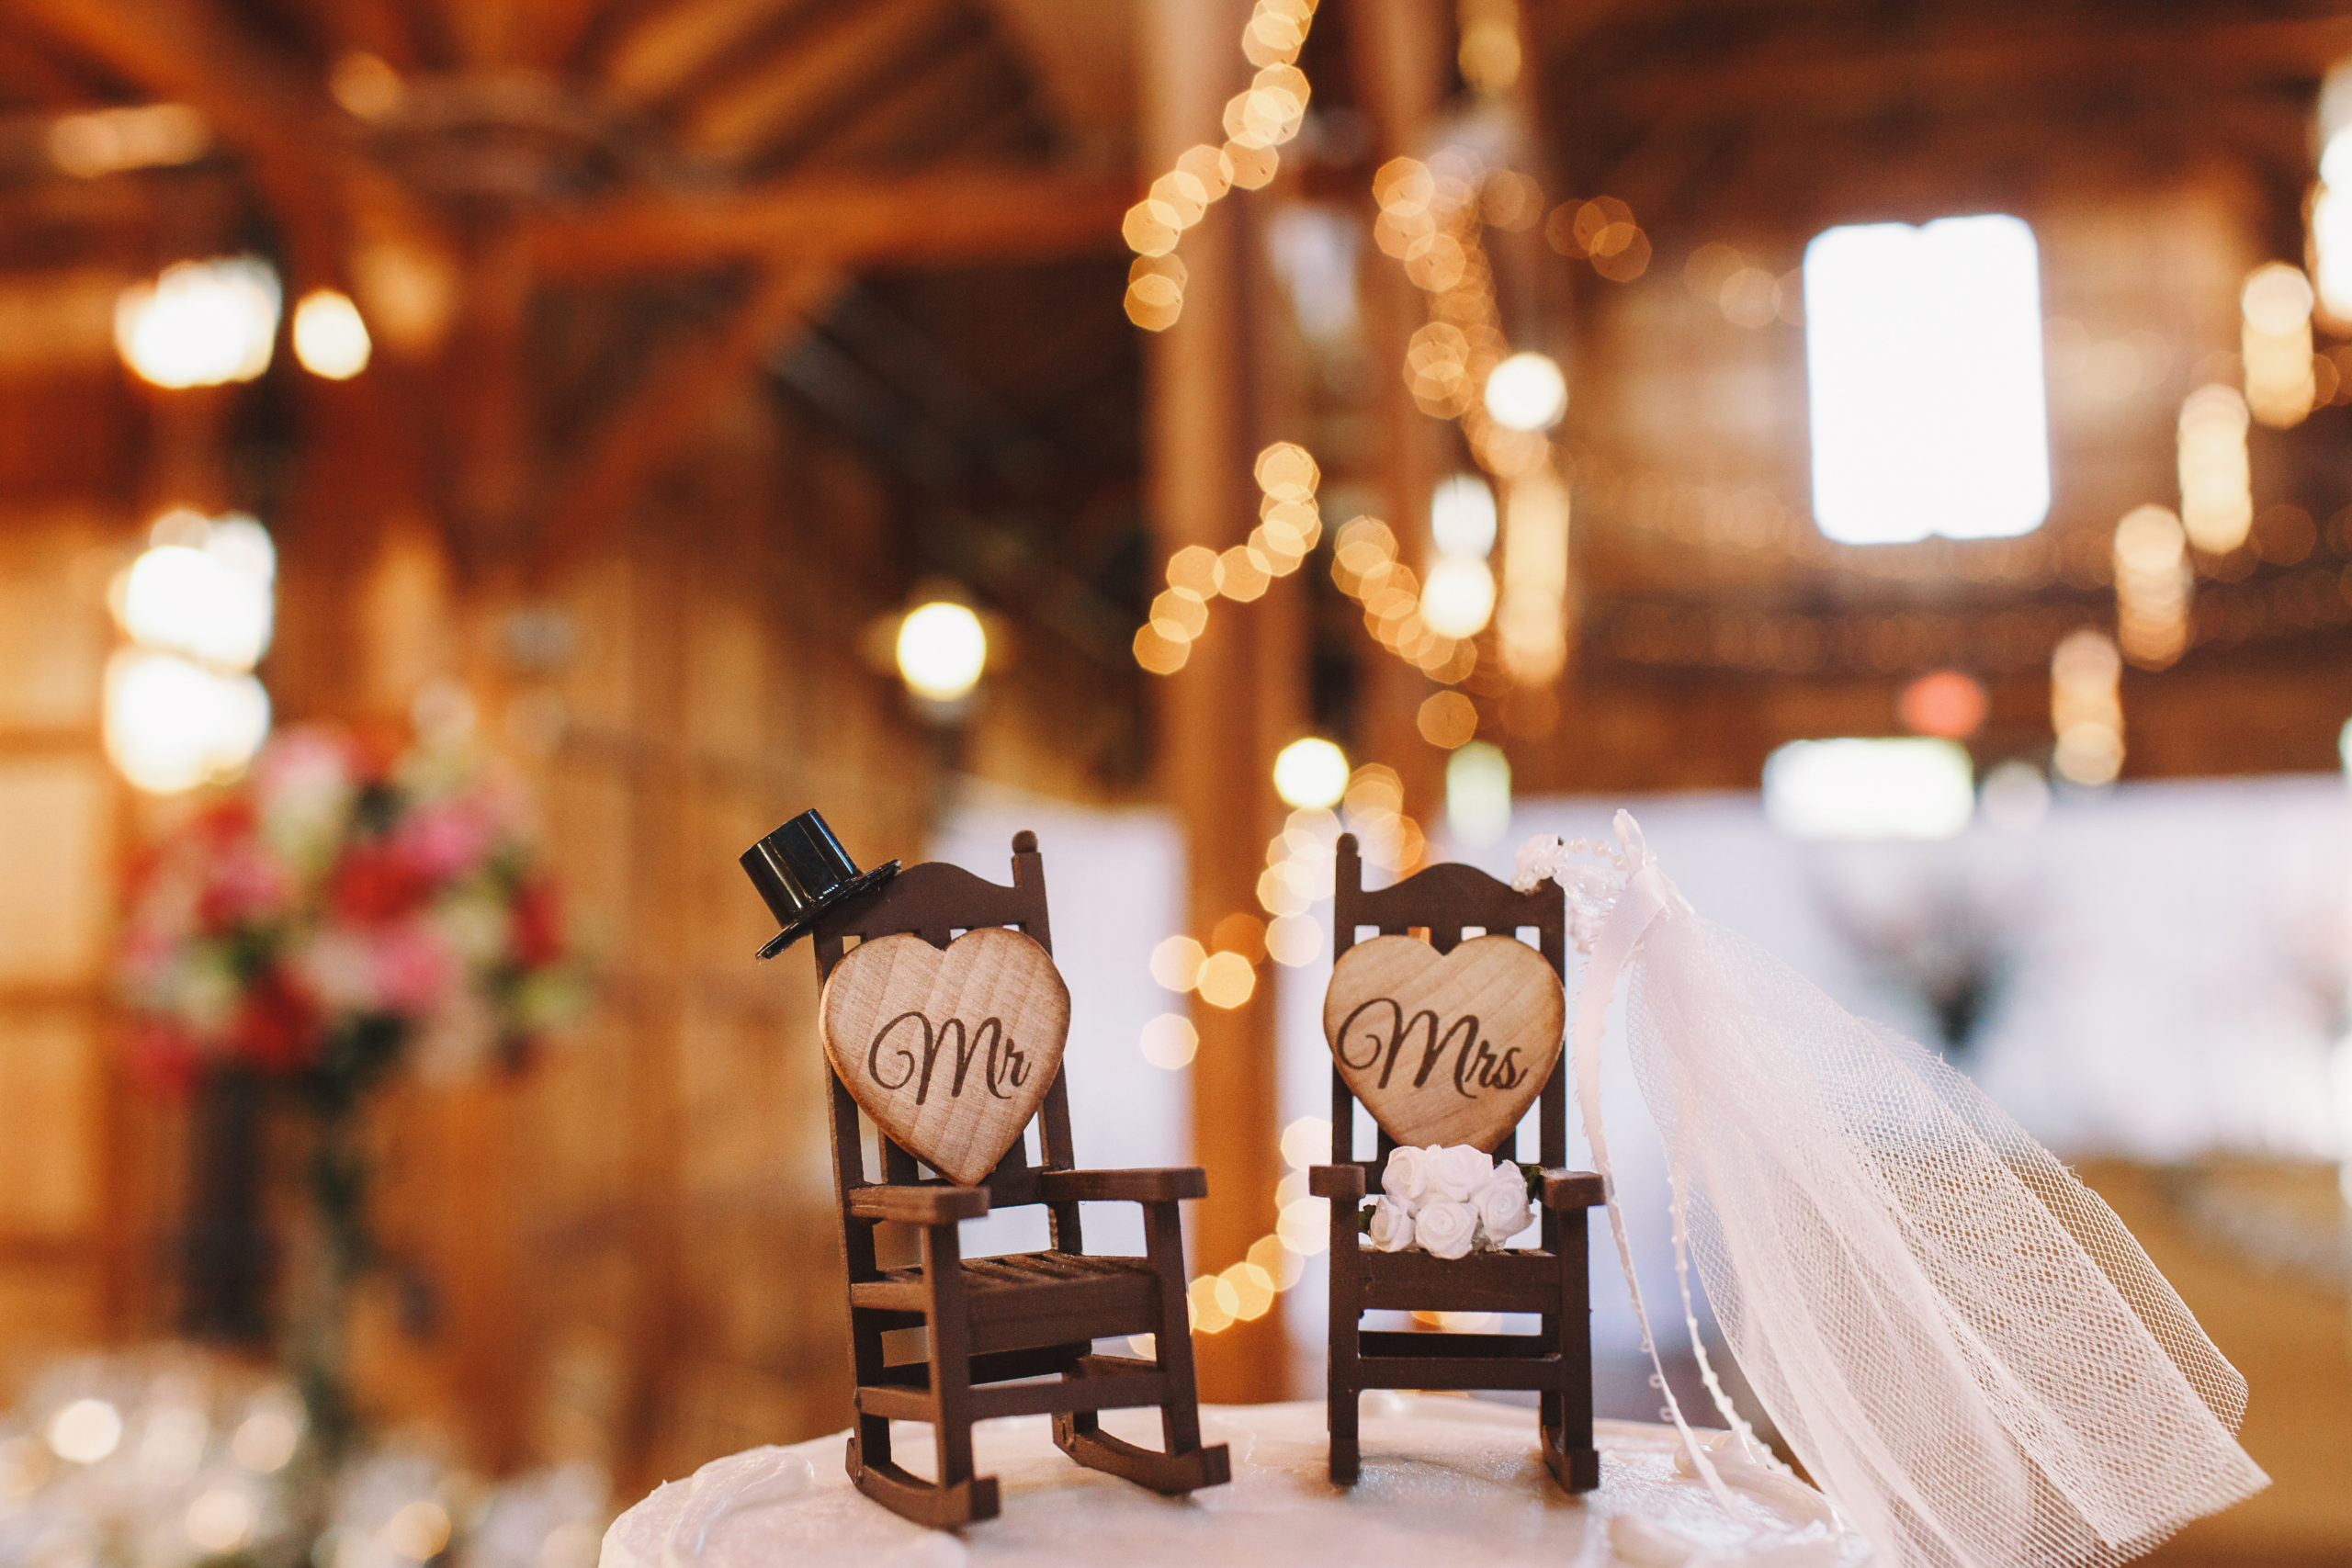 Wedding cake decor made in the for of two rocking chairs